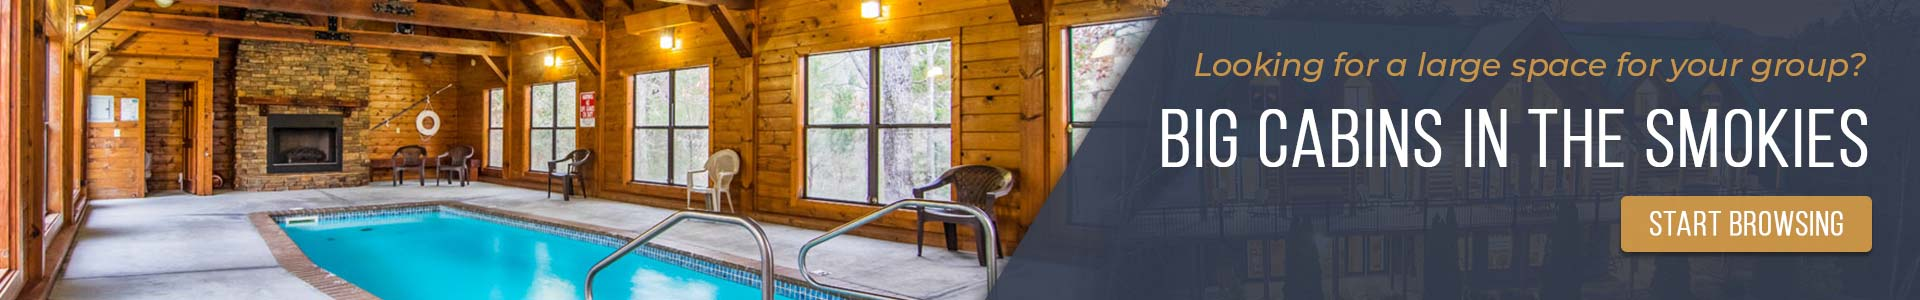 Pigeon Forge Cabin Rental Coupons Deals Cheap Cabin Rentals